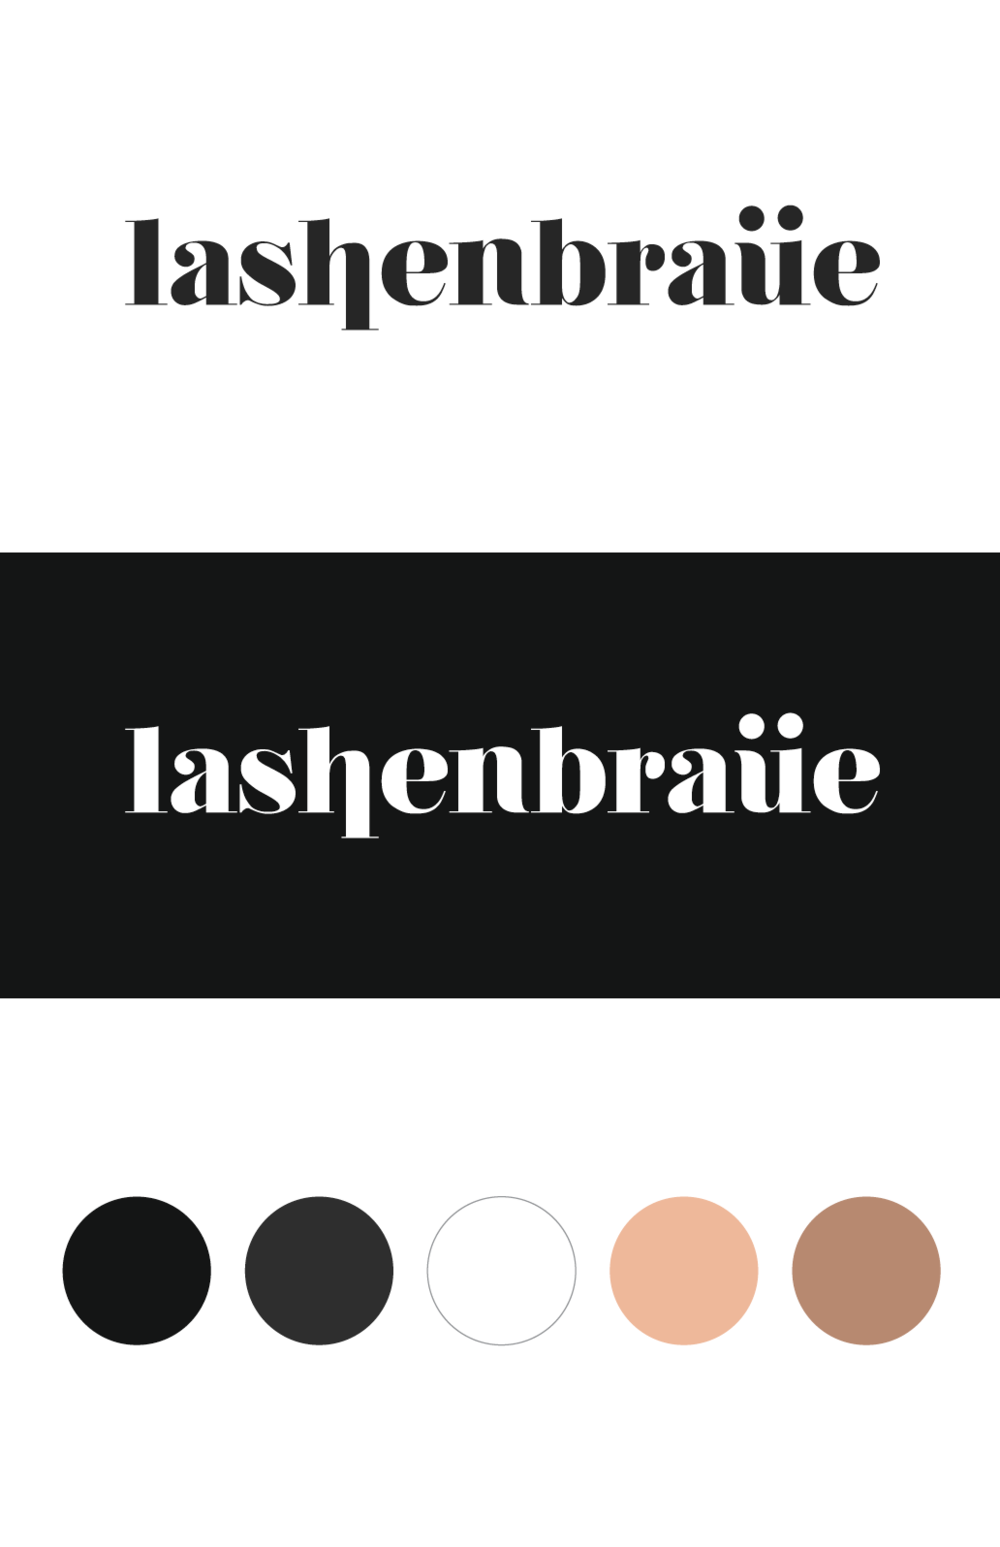 Lashenbraue-Logo&ColorPalette.png